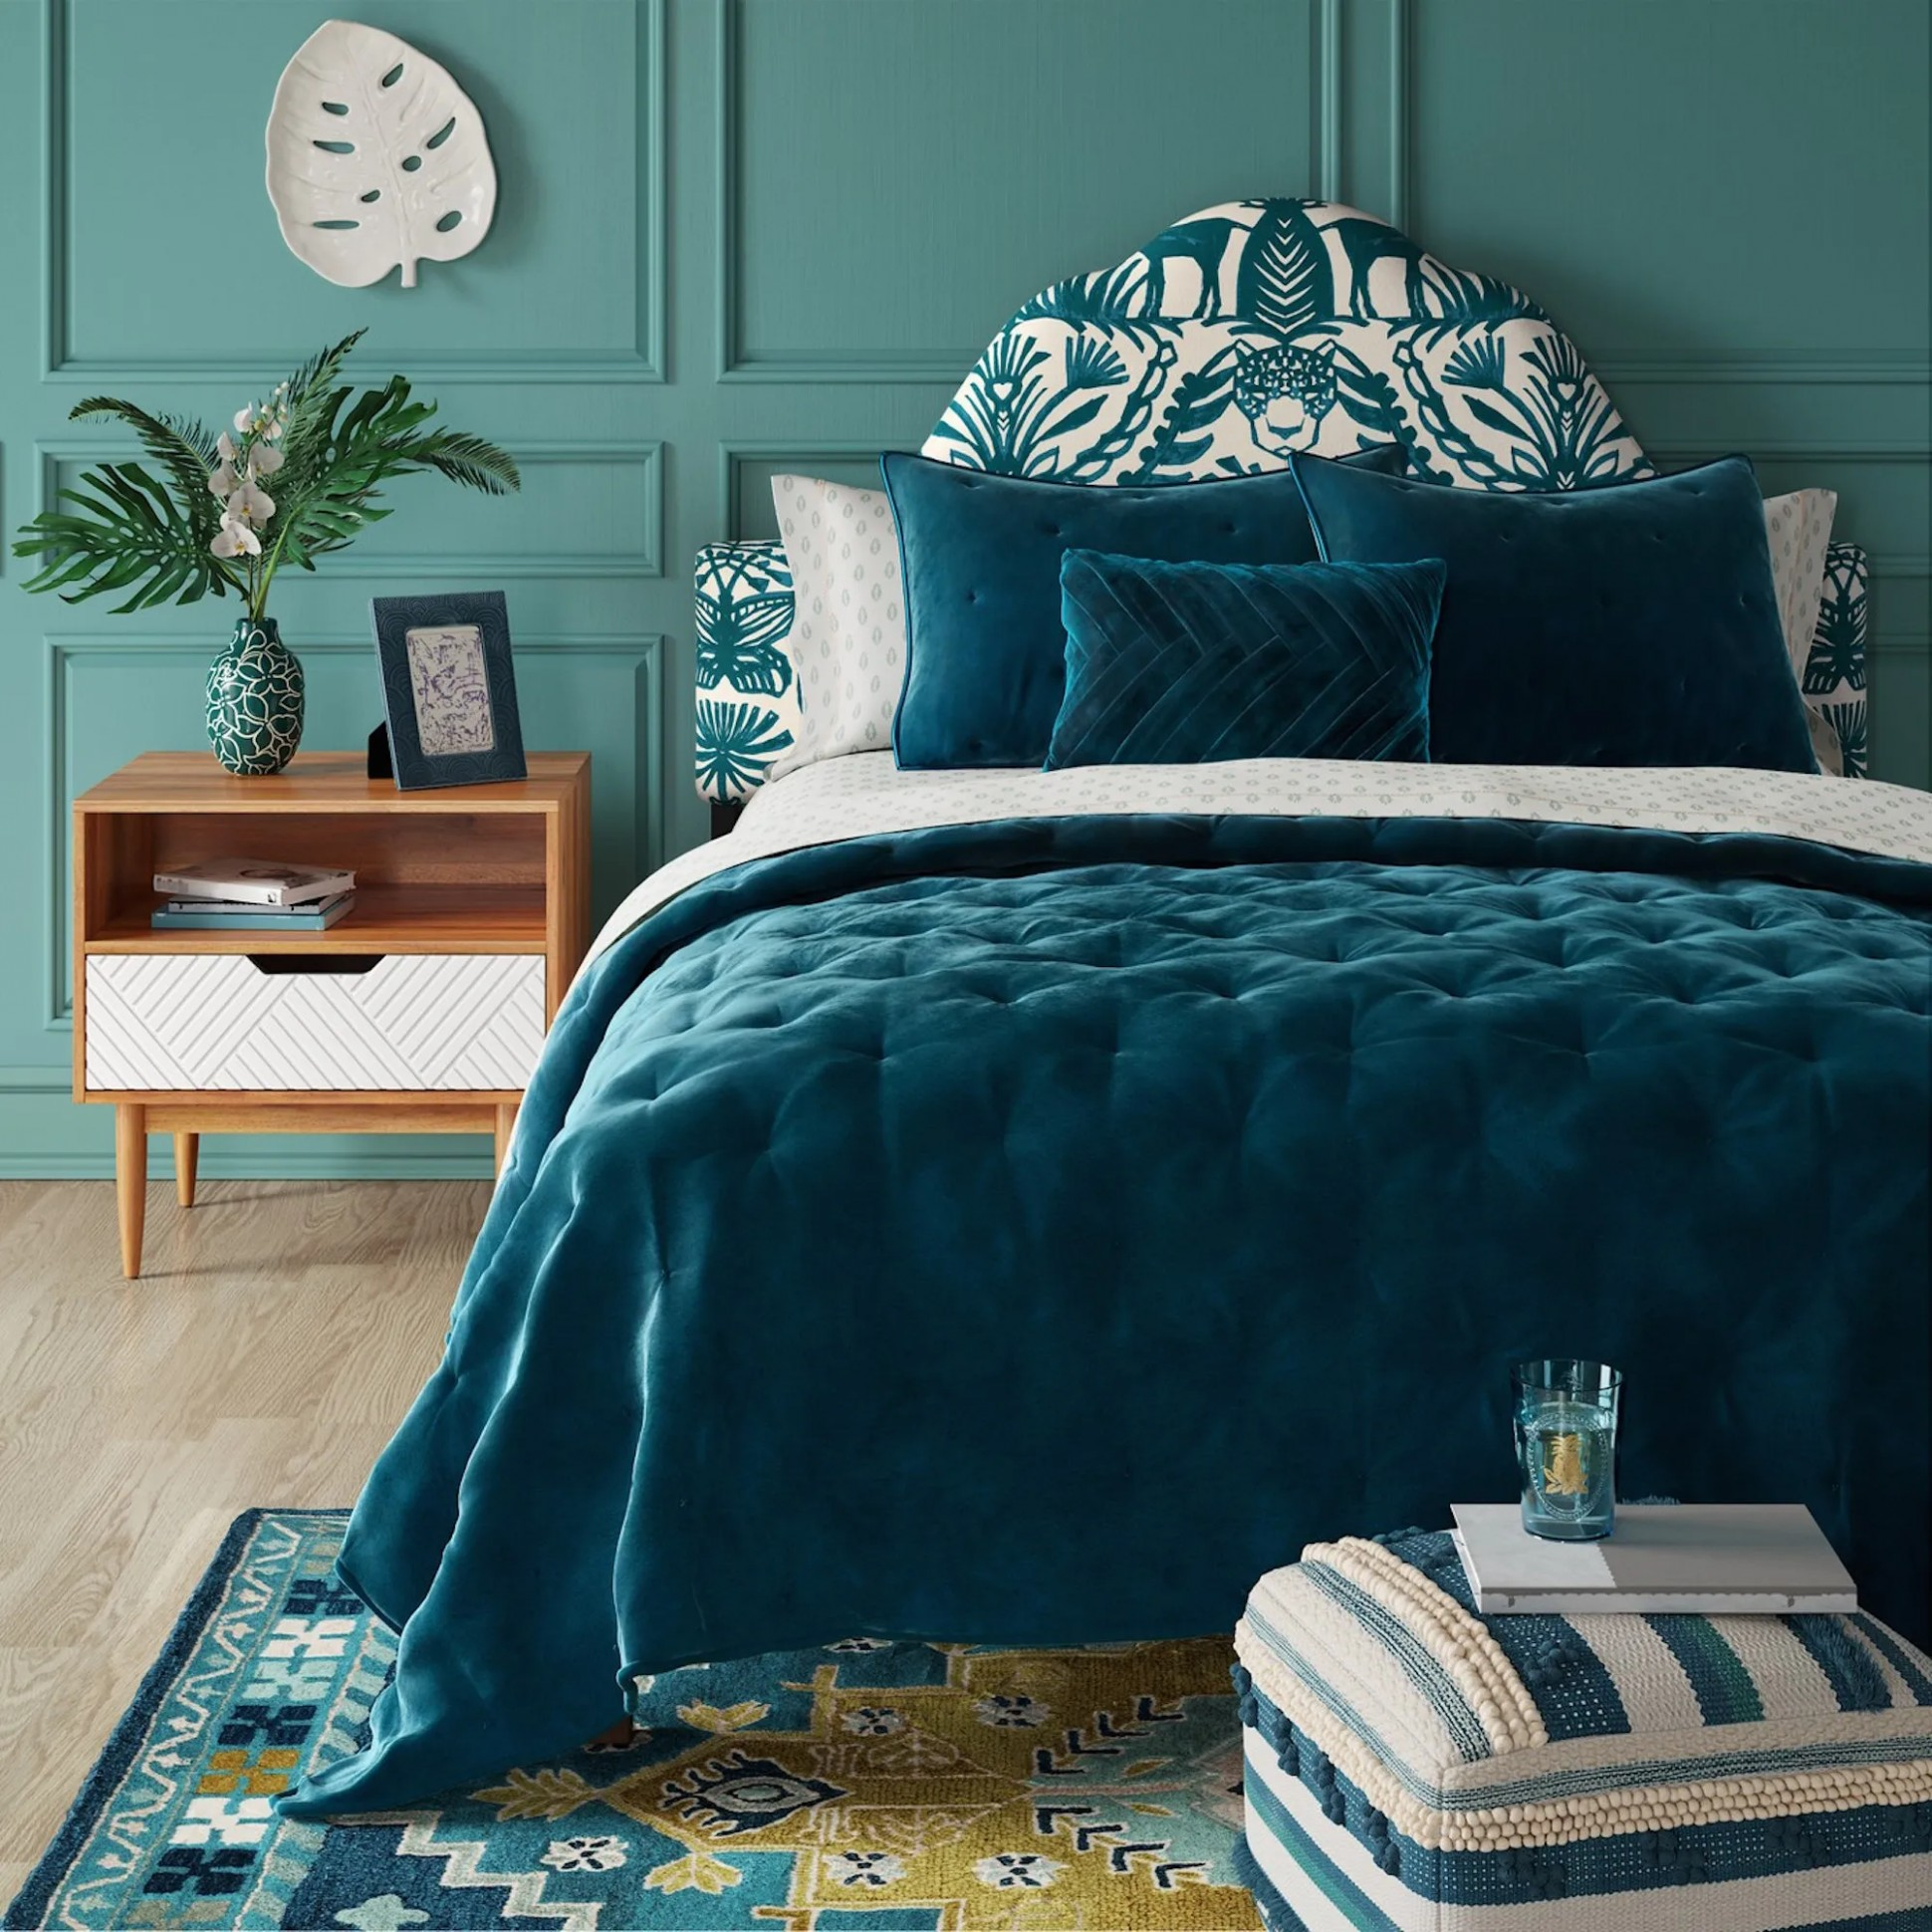 Emerald Green Home Decor & Furniture For Every Room - Bedroom Ideas Emerald Green